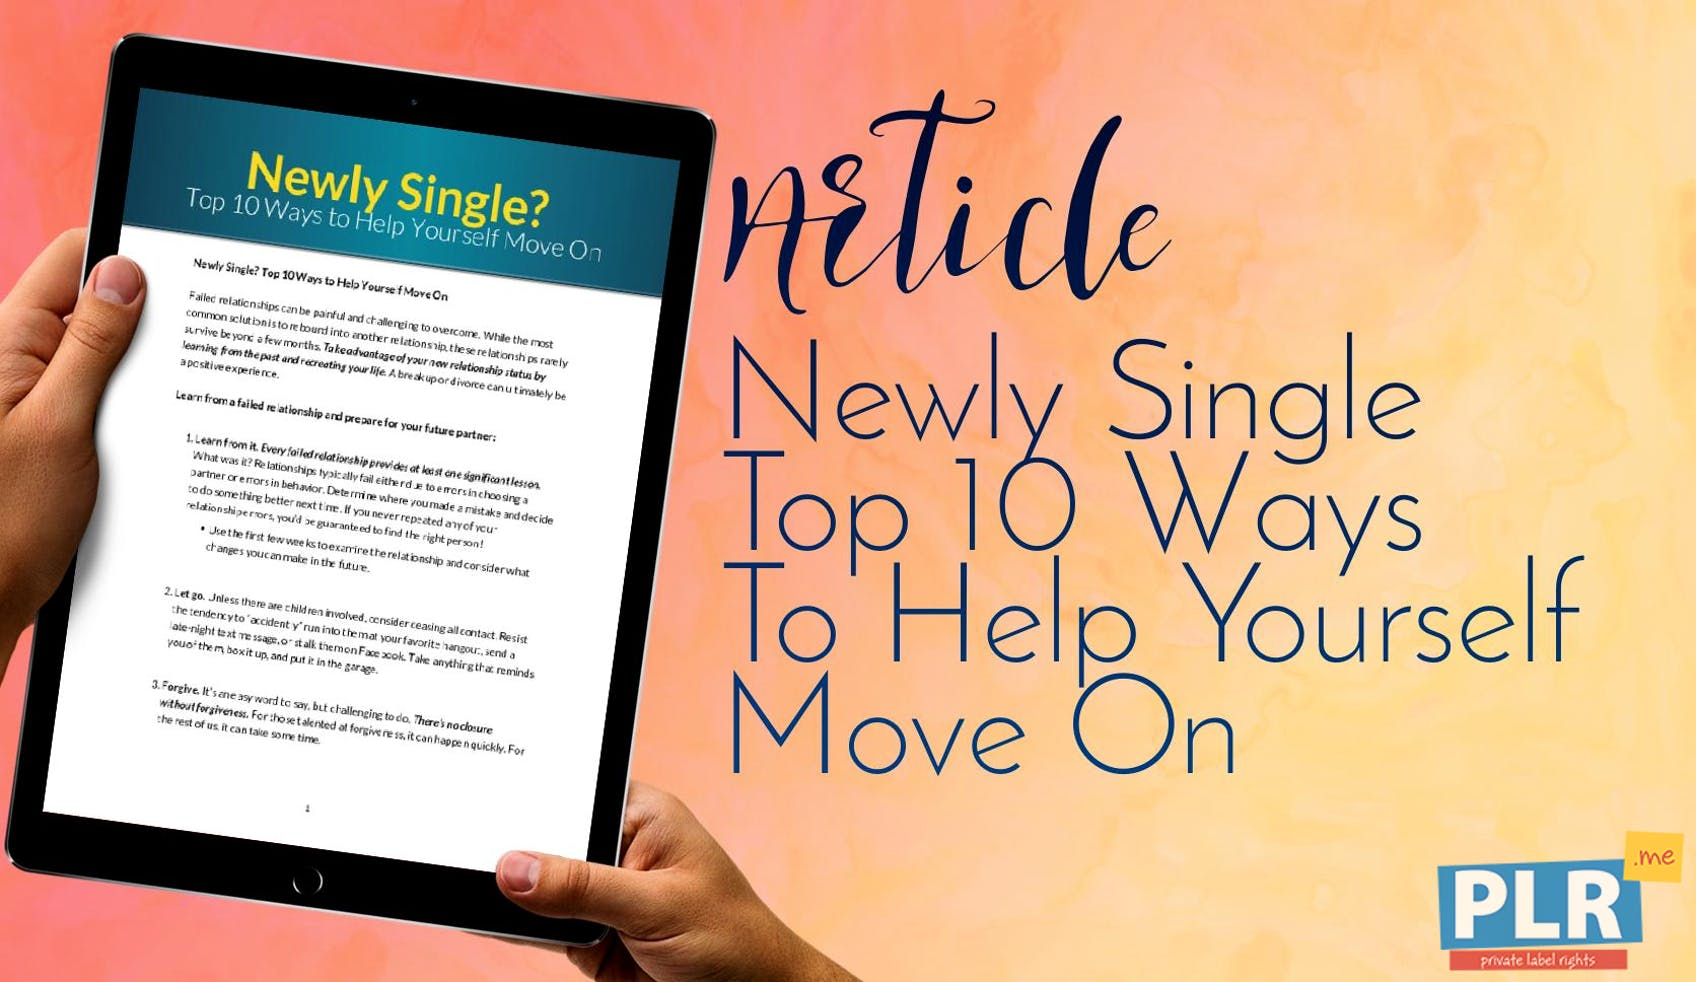 Newly Single Top 10 Ways To Help Yourself Move On